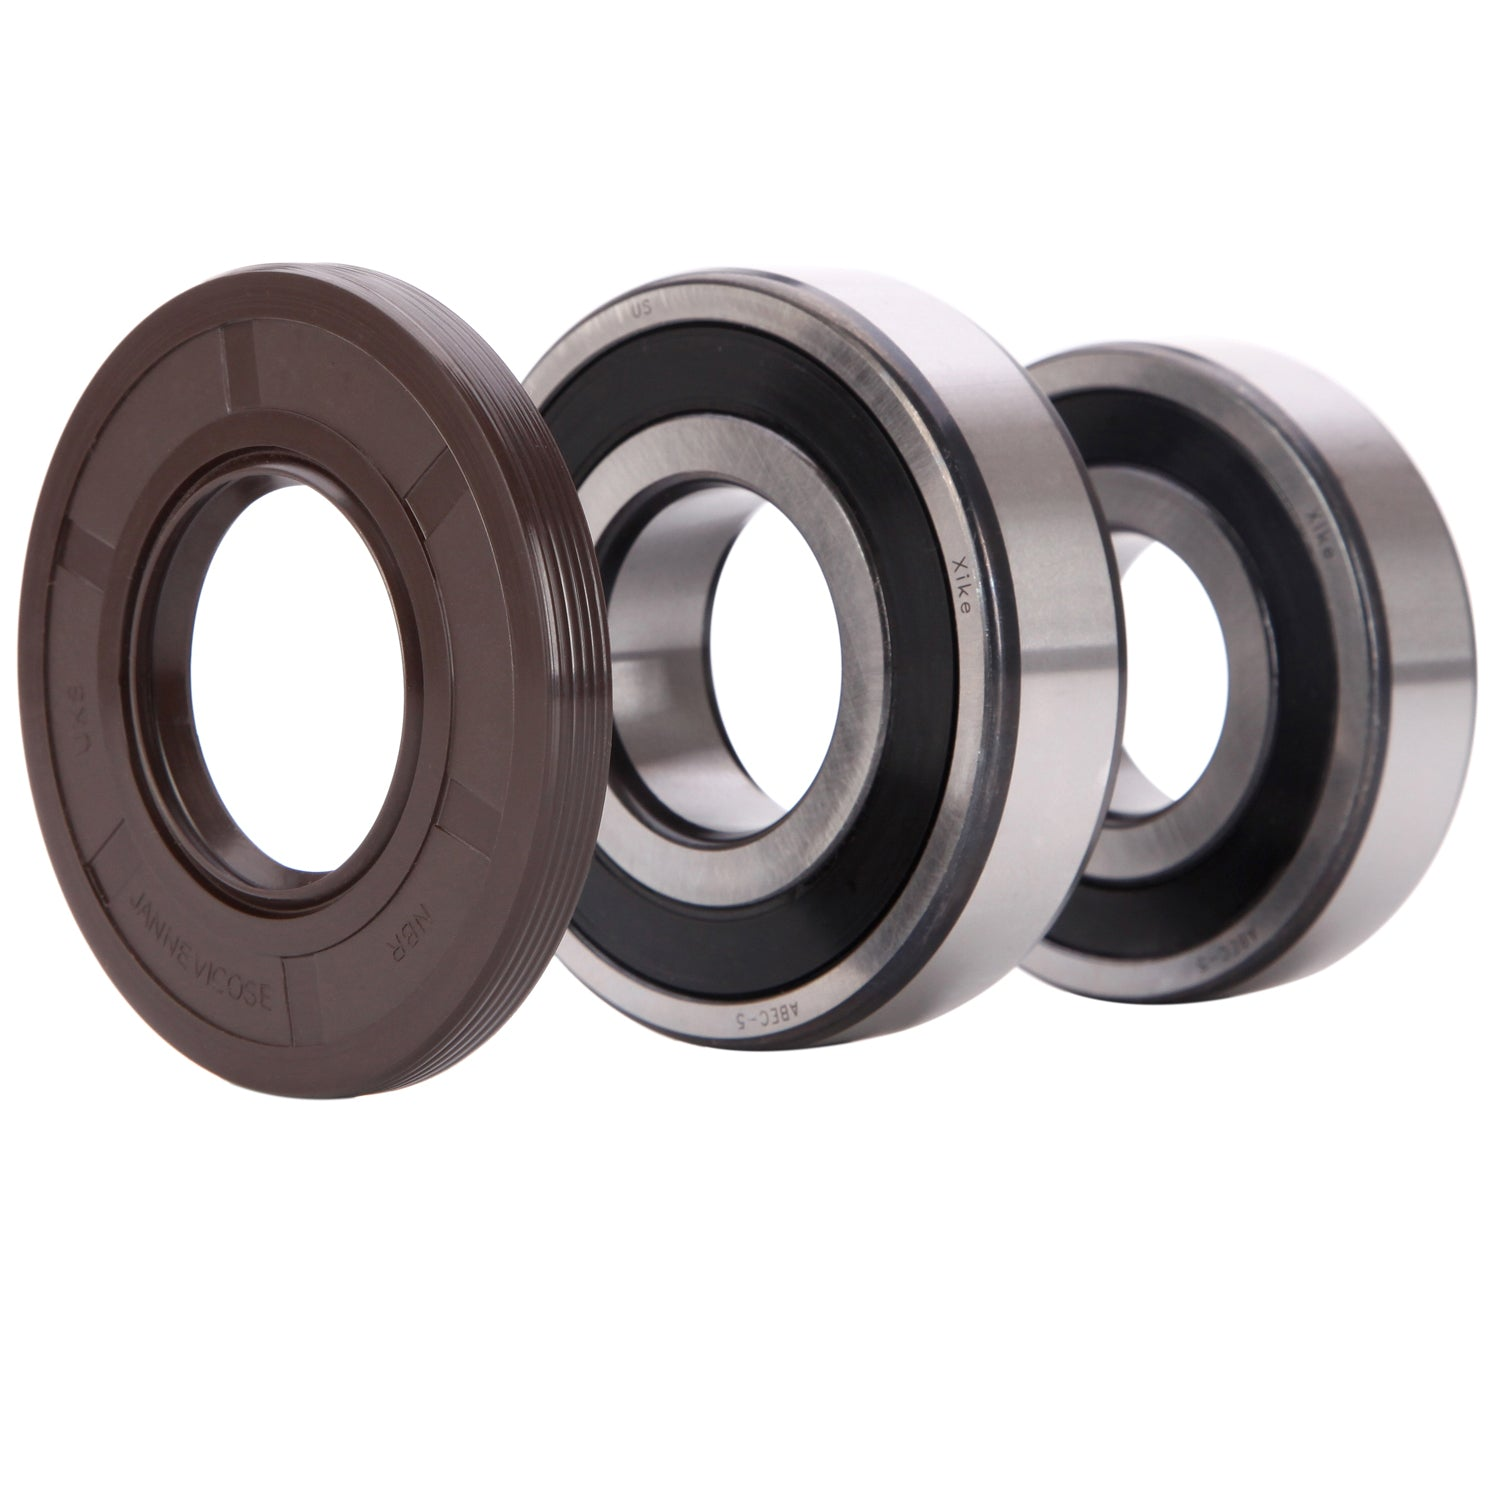 Replacement for Samsung WF328AAG WF328AAR WF328AAW WF337AAR. XiKe DC97-12957A and DC69-00804A Washer Tub Bearing & Seal Kit Rotate Quiet and Durable